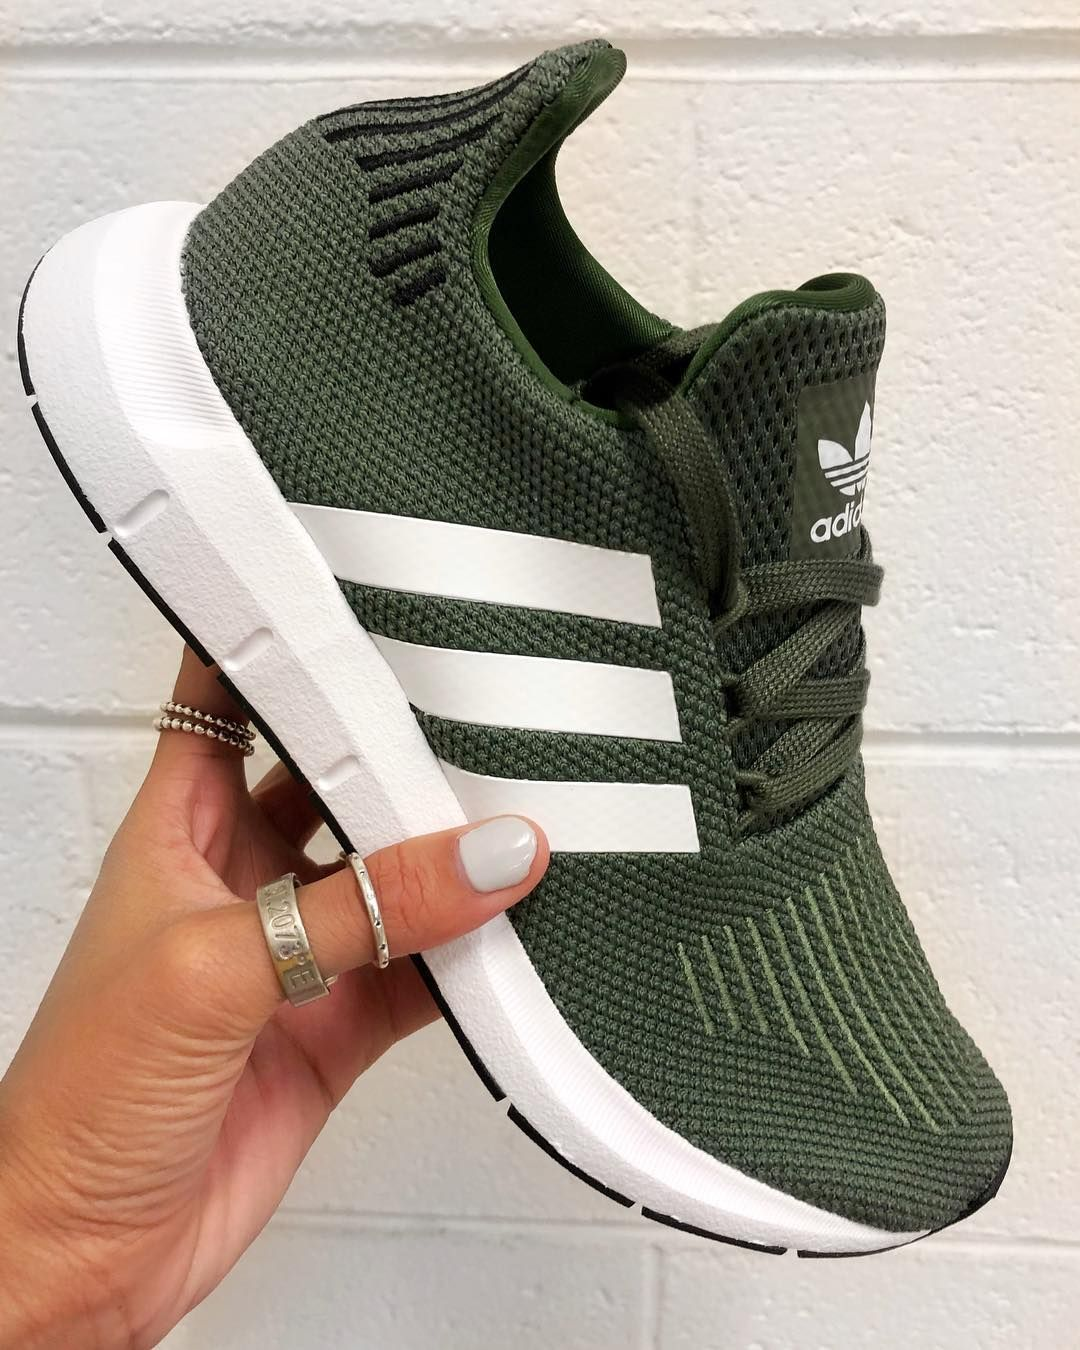 c349c68f96f2 adidas Originals Swift Run – Green – AQ0866 - Shoes. Stylish adidas shoes  displayed by woman with jewellery.